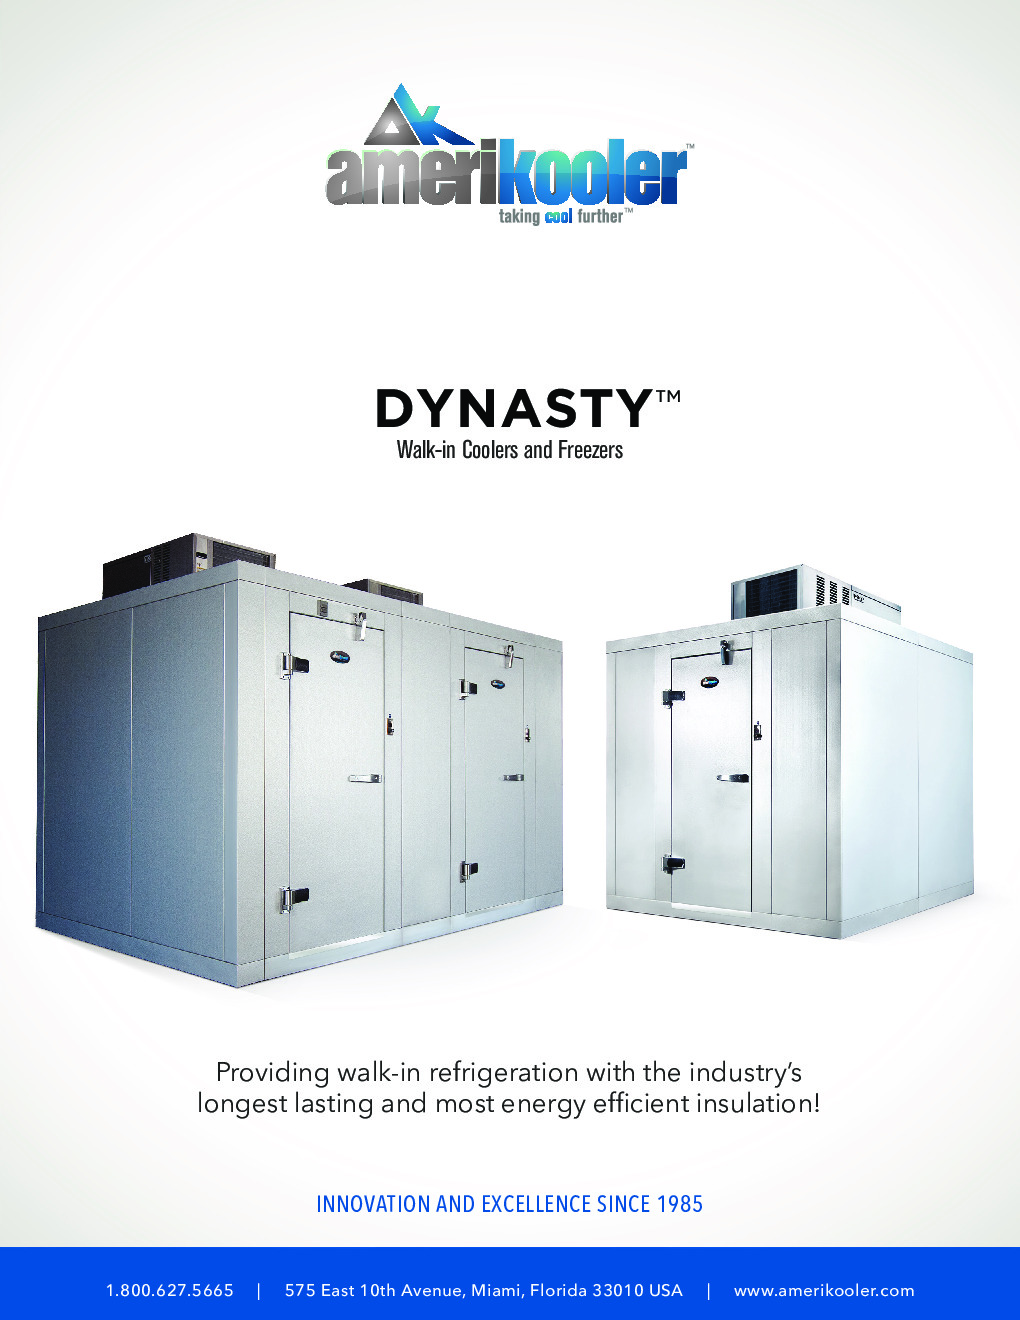 AmeriKooler DW081277F-4/8-SC 8' X 12' Walk-In Cooler, 8' L Cooler with Floor and 4' L Freezer, Self Contained